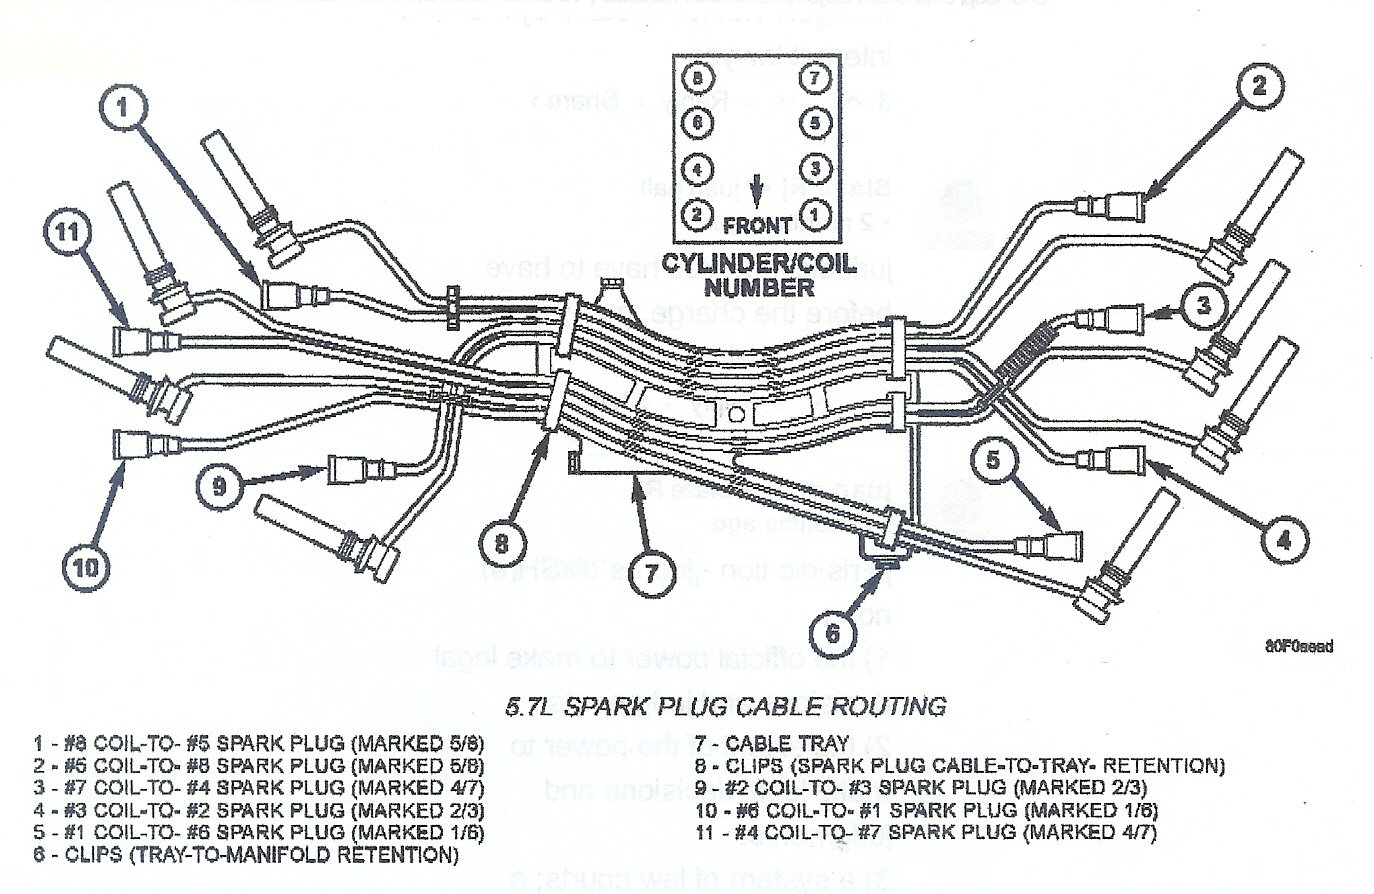 DIAGRAM] 1996 Dodge Ram 1500 Spark Plug Wiring Diagram FULL Version HD  Quality Wiring Diagram - 05081356ACCWIRING.CONTOROCK.ITCONTO ROCK